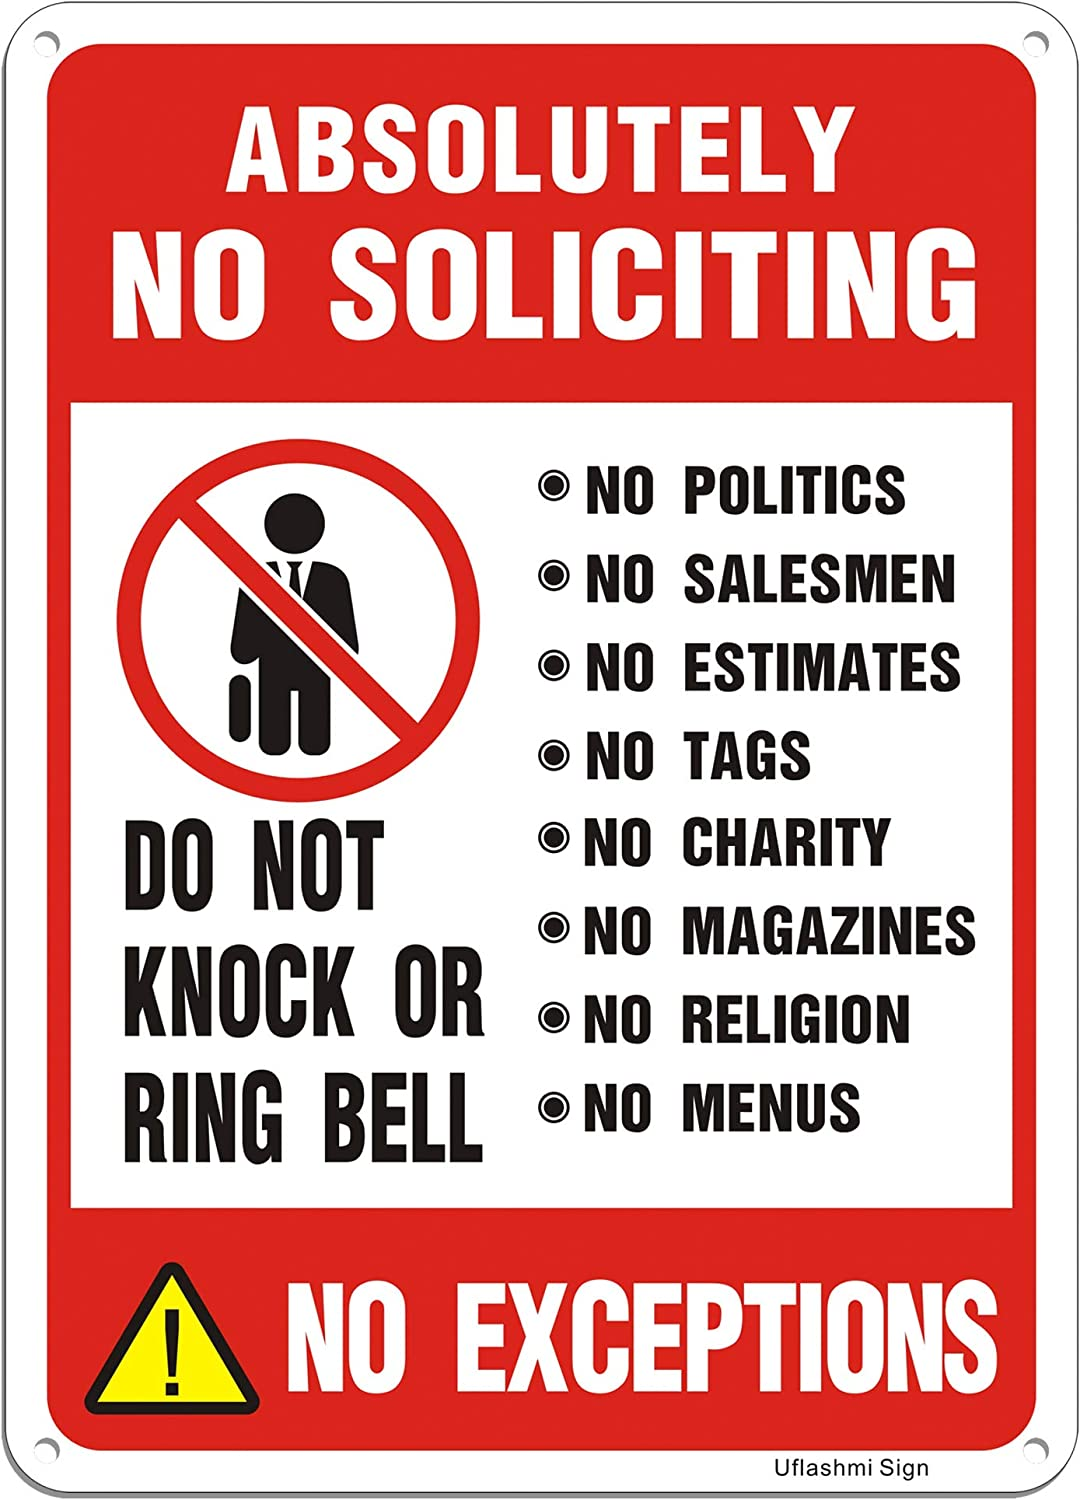 Uflashmi No Soliciting Directly managed store Sign for Absolutely Door S Max 62% OFF House Yard